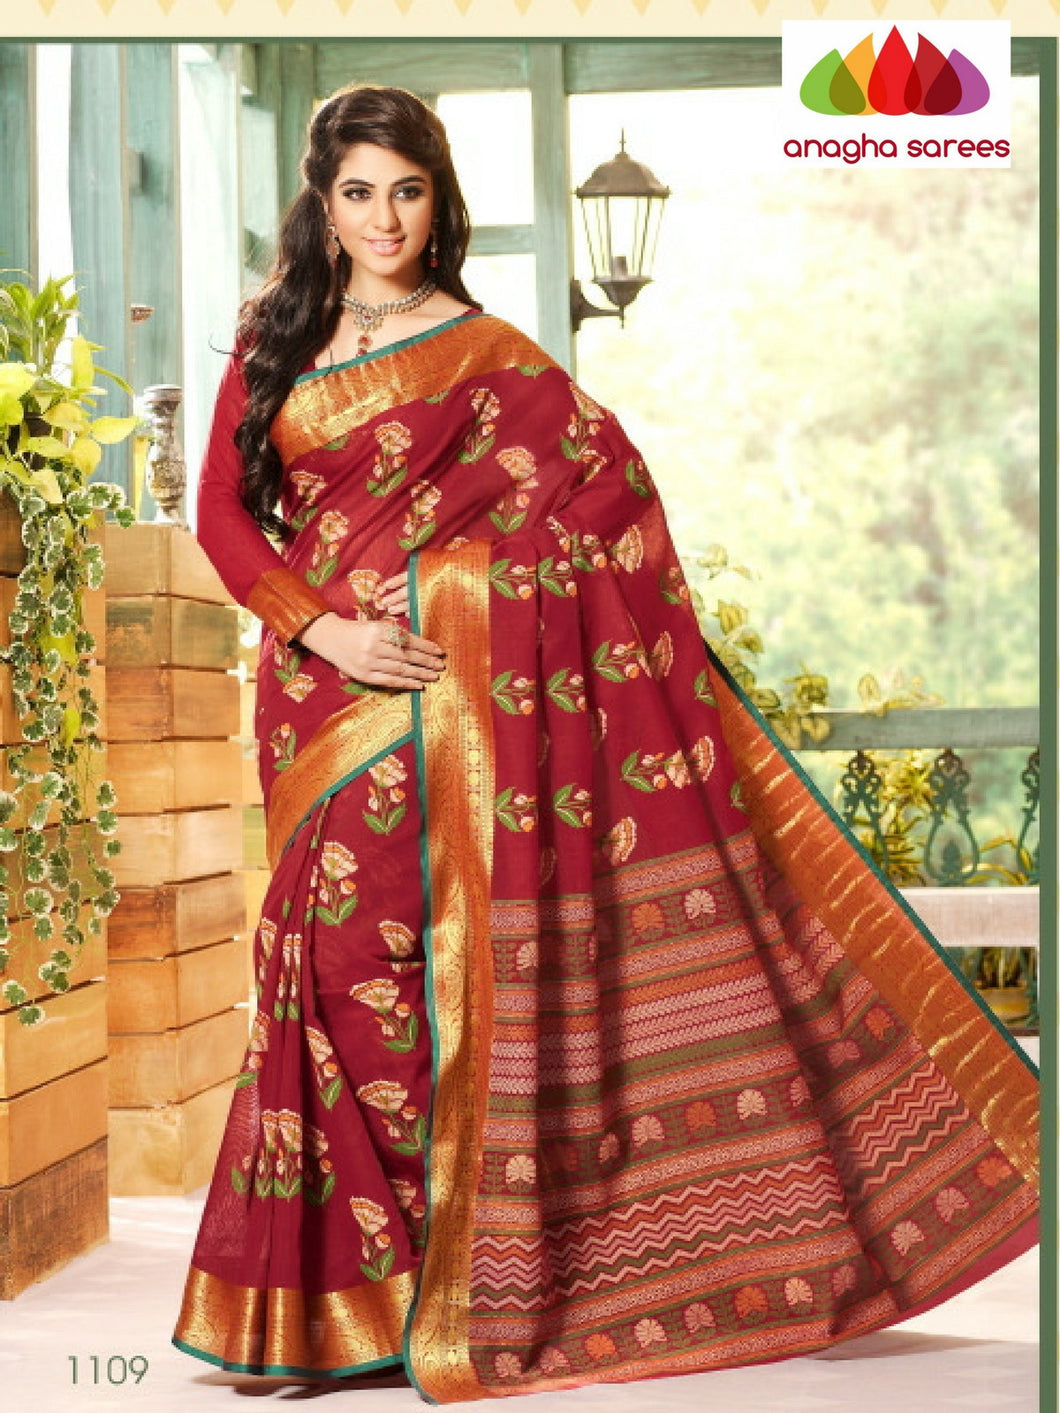 Anagha Sarees Cotton saree Fancy Cotton Saree - Red/Big Zari Border : ANA_150